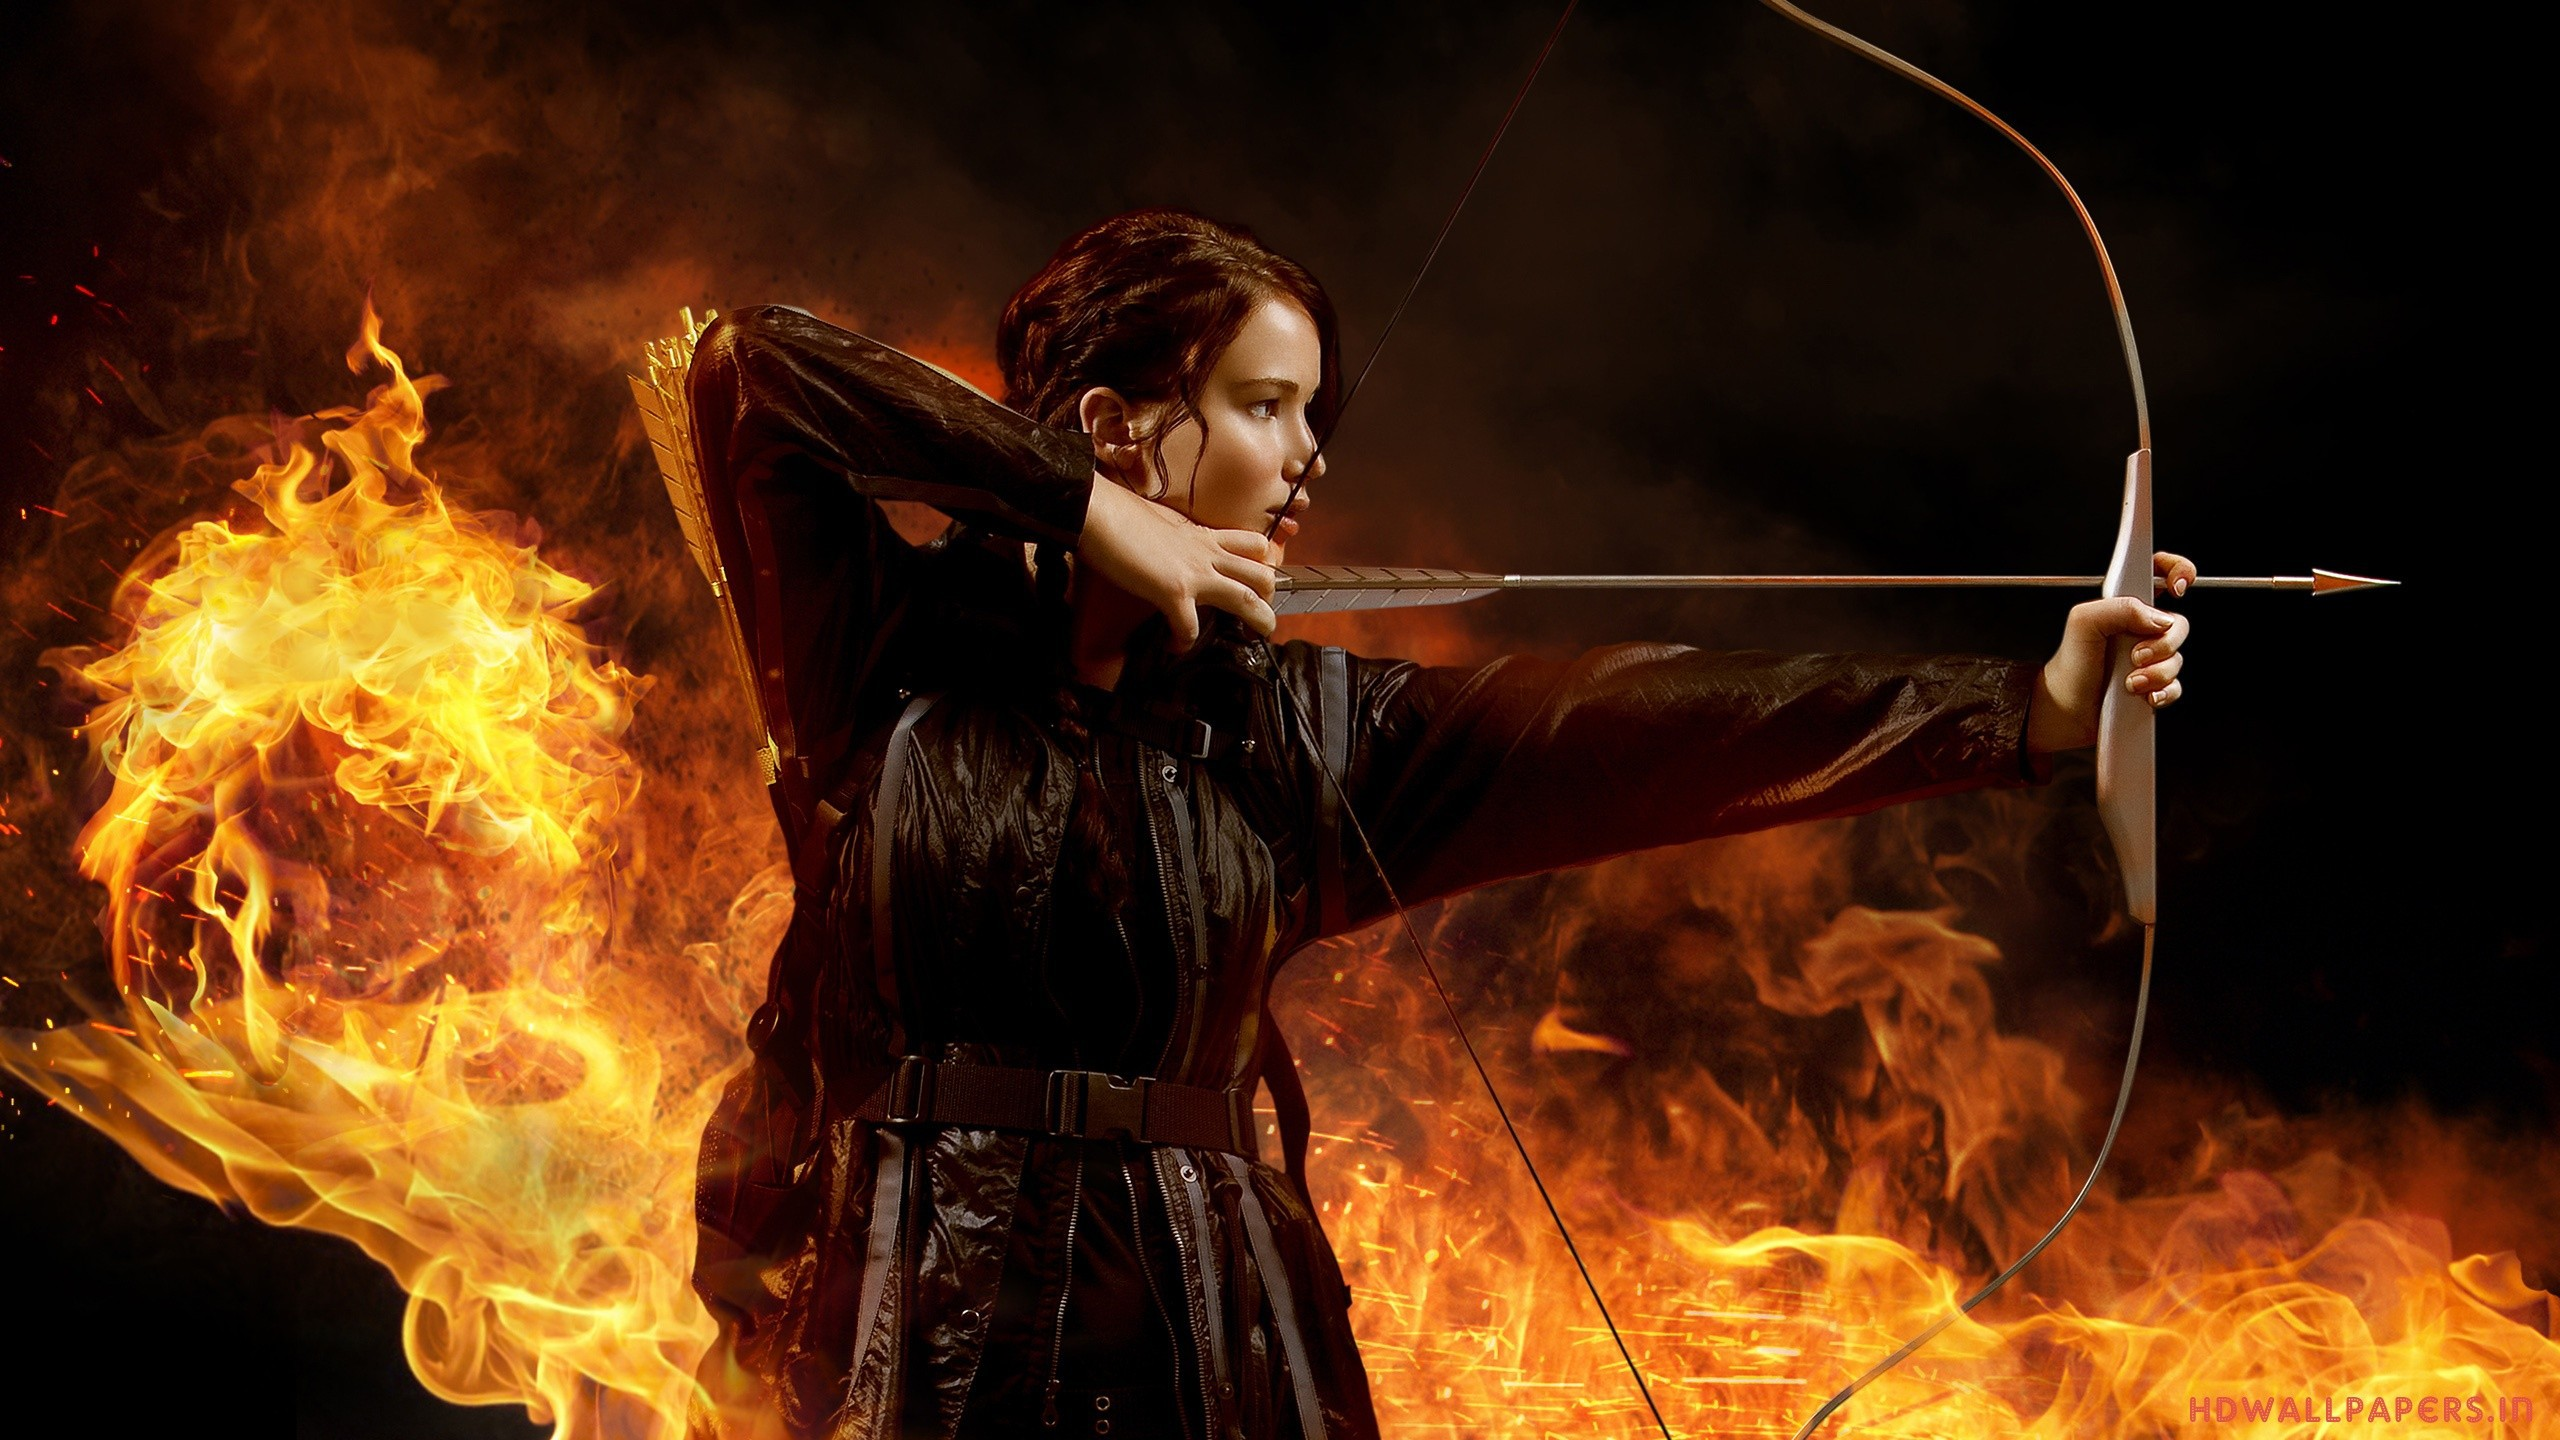 http://www.australianbroadcastingmedia.com.au/publishing/wp-content/uploads/2014/03/Movies_Hunger_games_catching_fire__hero_is_aiming_046424_.jpg